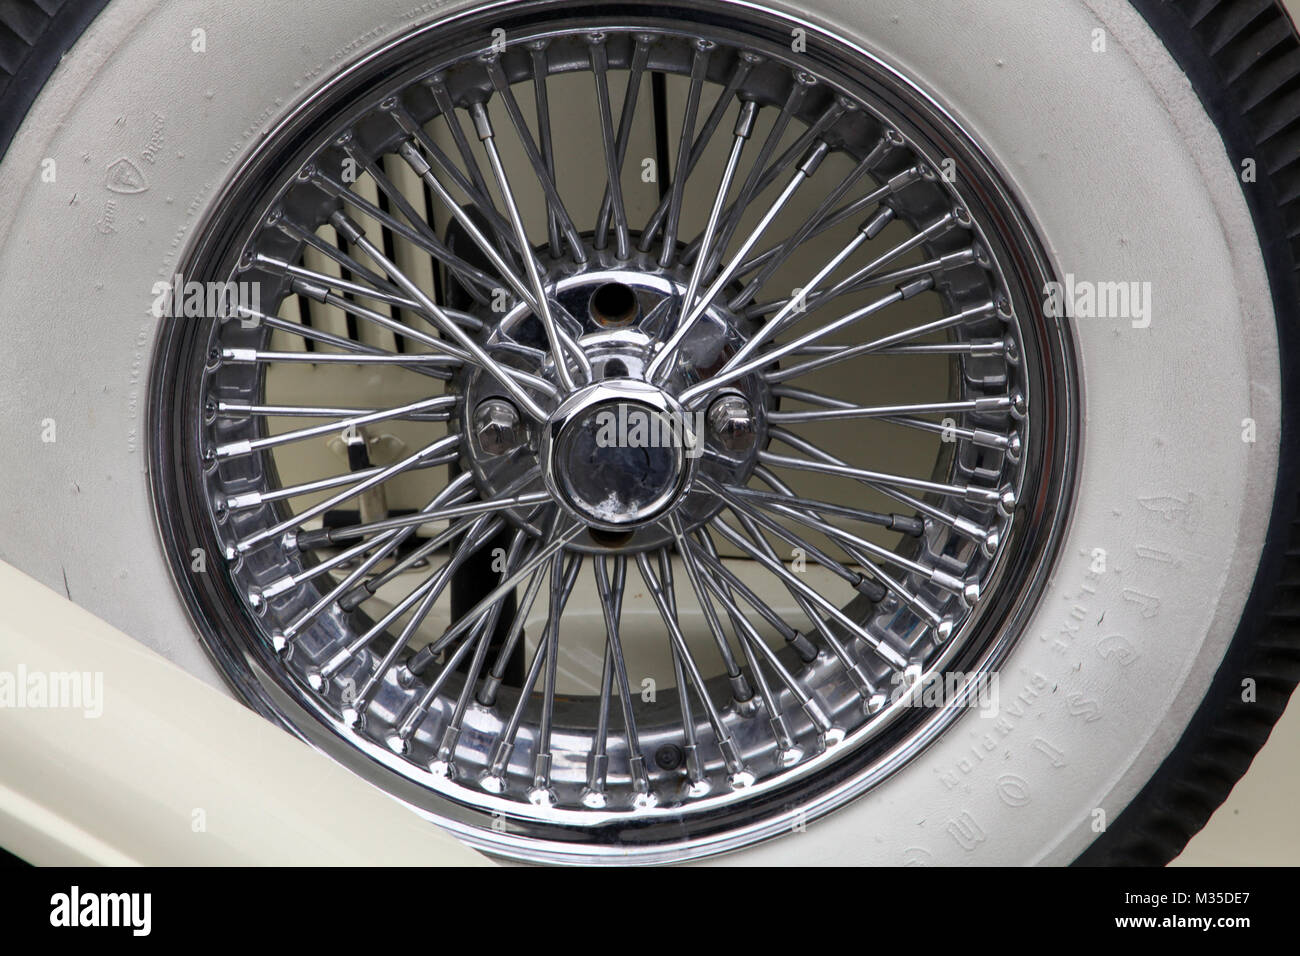 close up view of a white walled tyre with steel spoked wire wheel - Stock Image